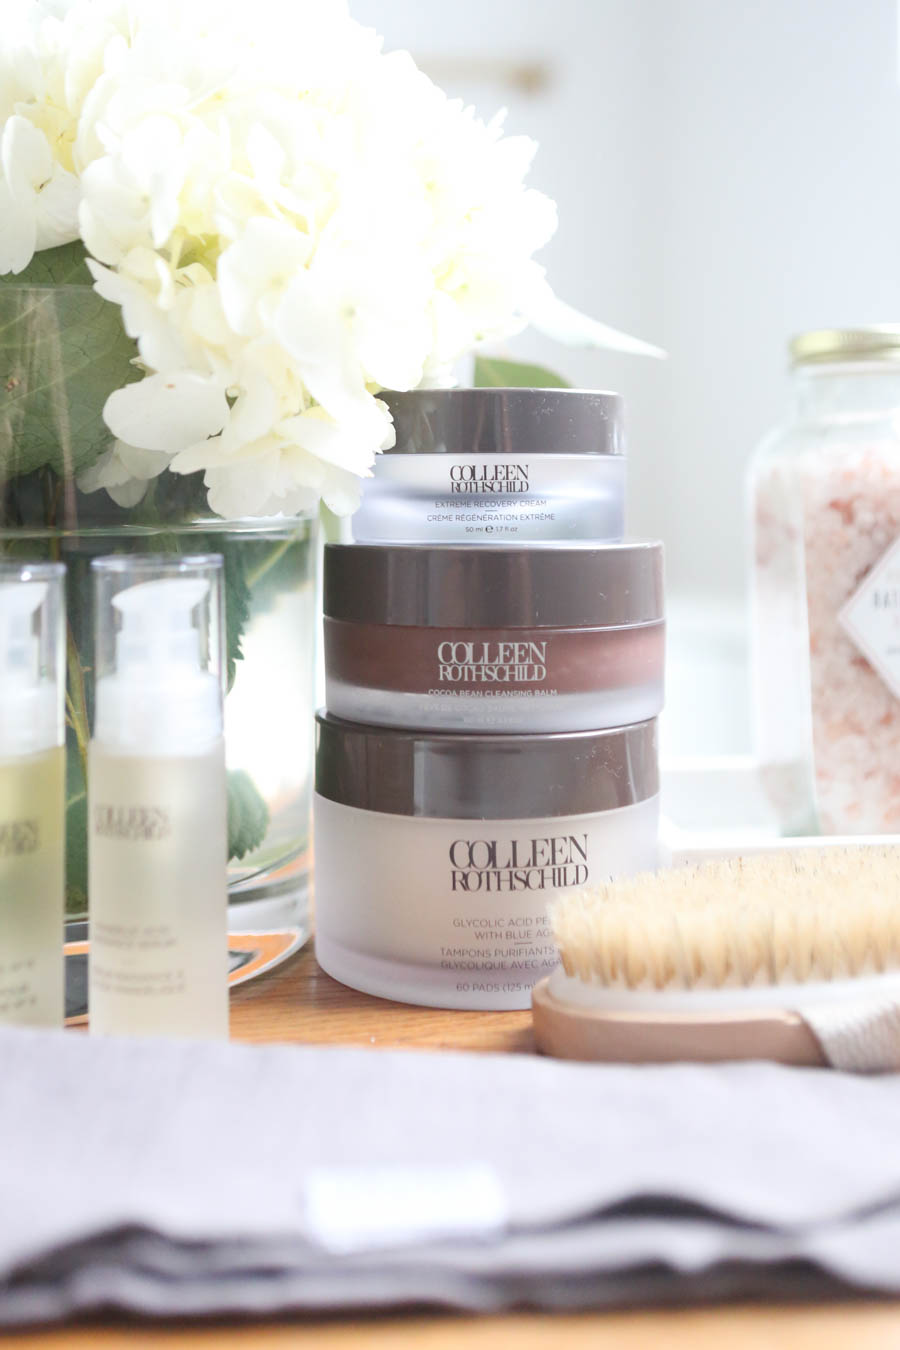 Hair and Skin Care Routine with Colleen Rothschild Products hair and skin products to help aging skin spots and melanoma